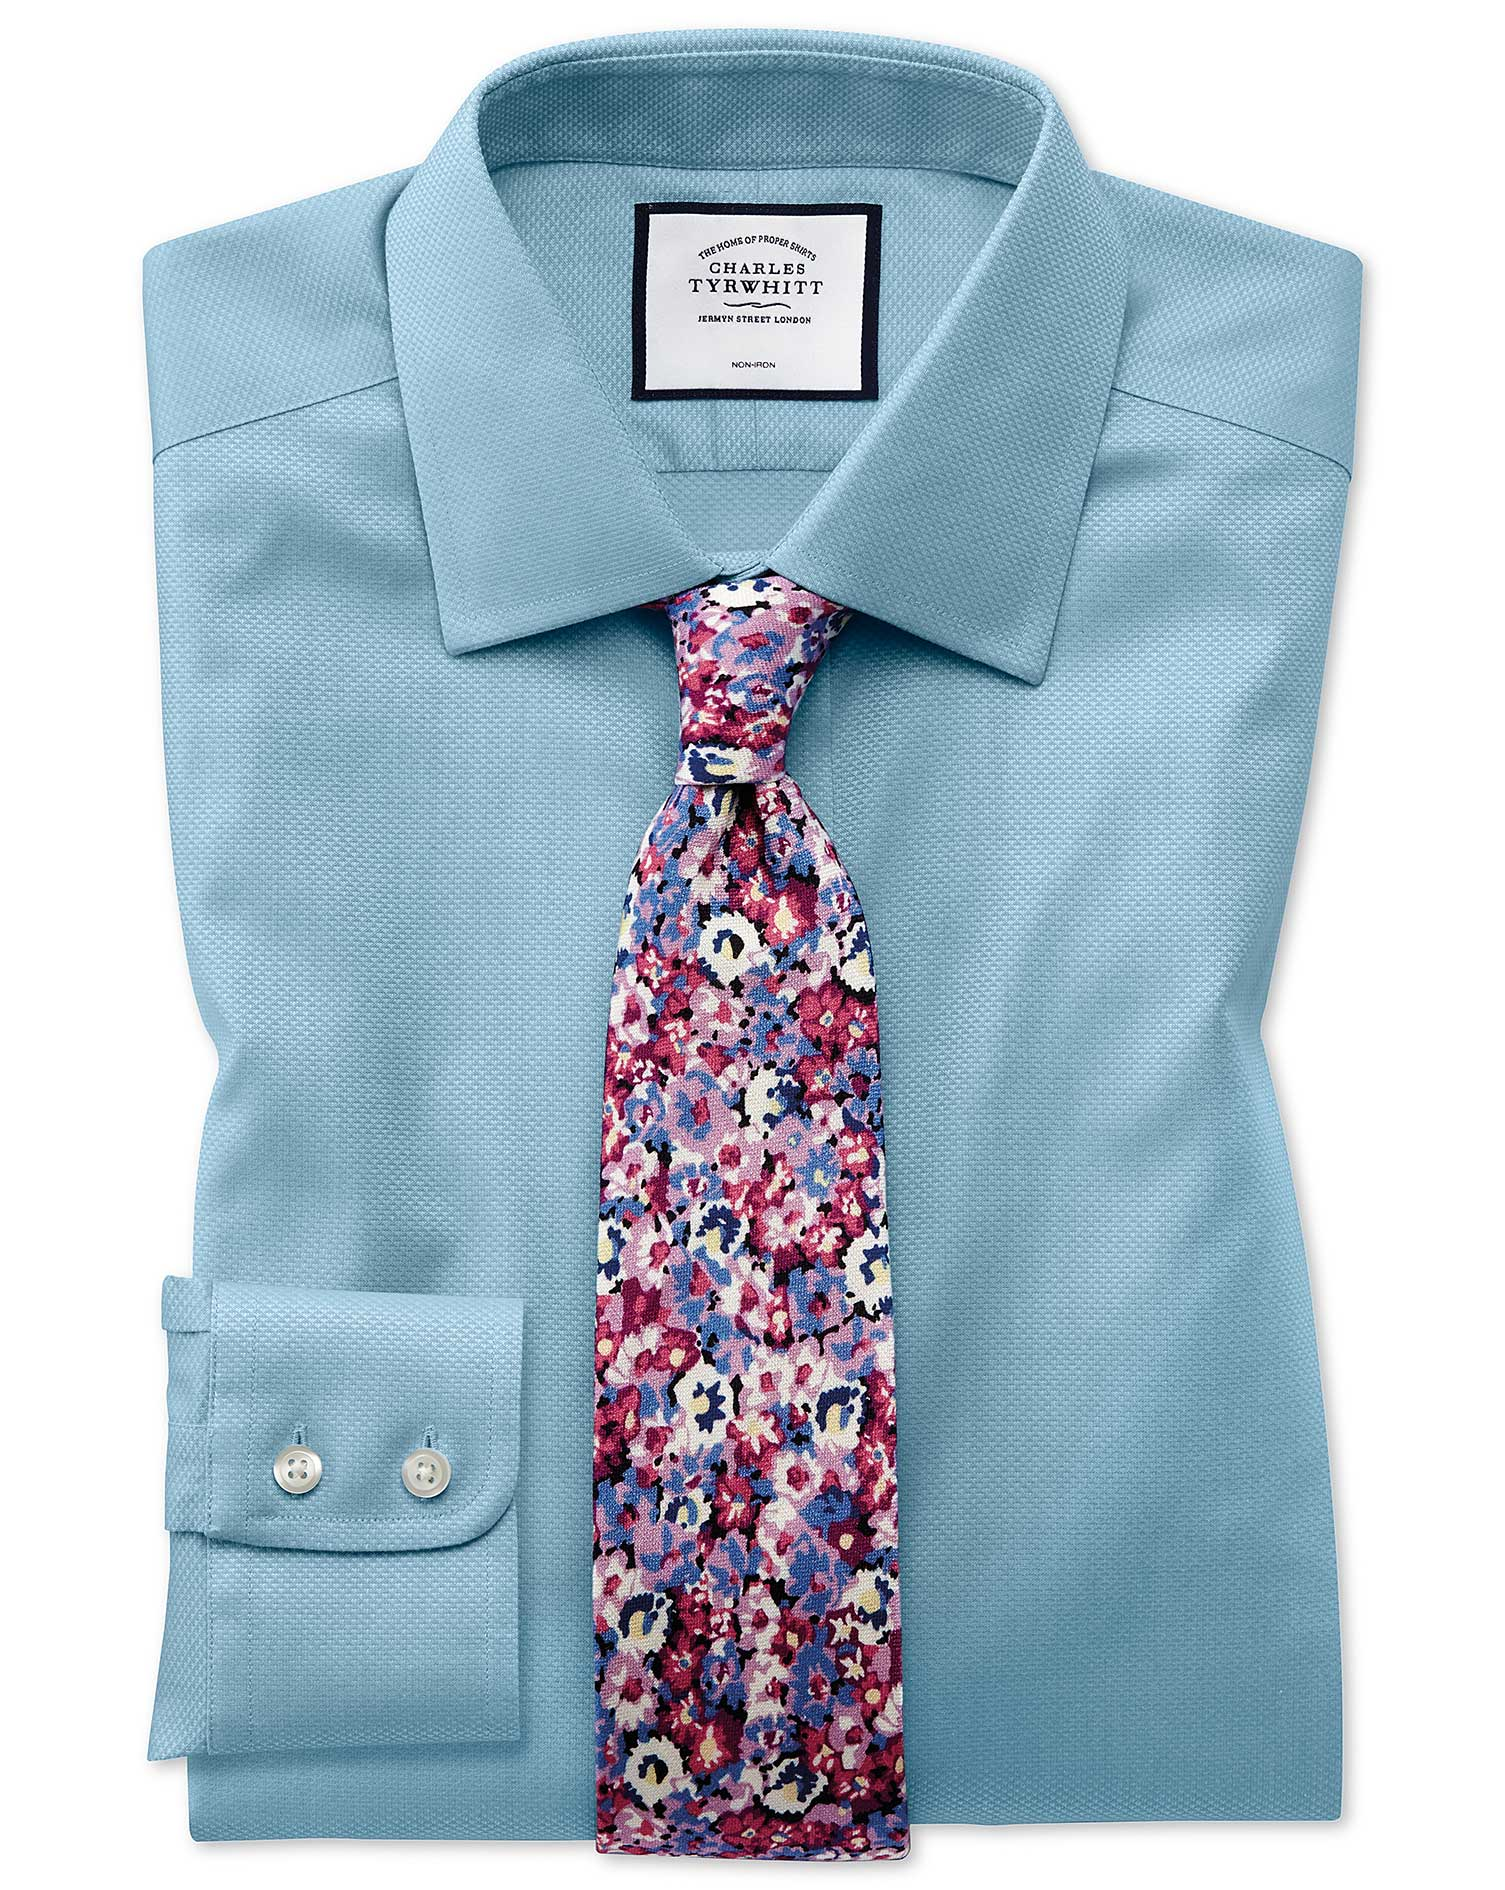 Slim Fit Non-Iron Teal Triangle Weave Cotton Formal Shirt Single Cuff Size 17/36 by Charles Tyrwhitt